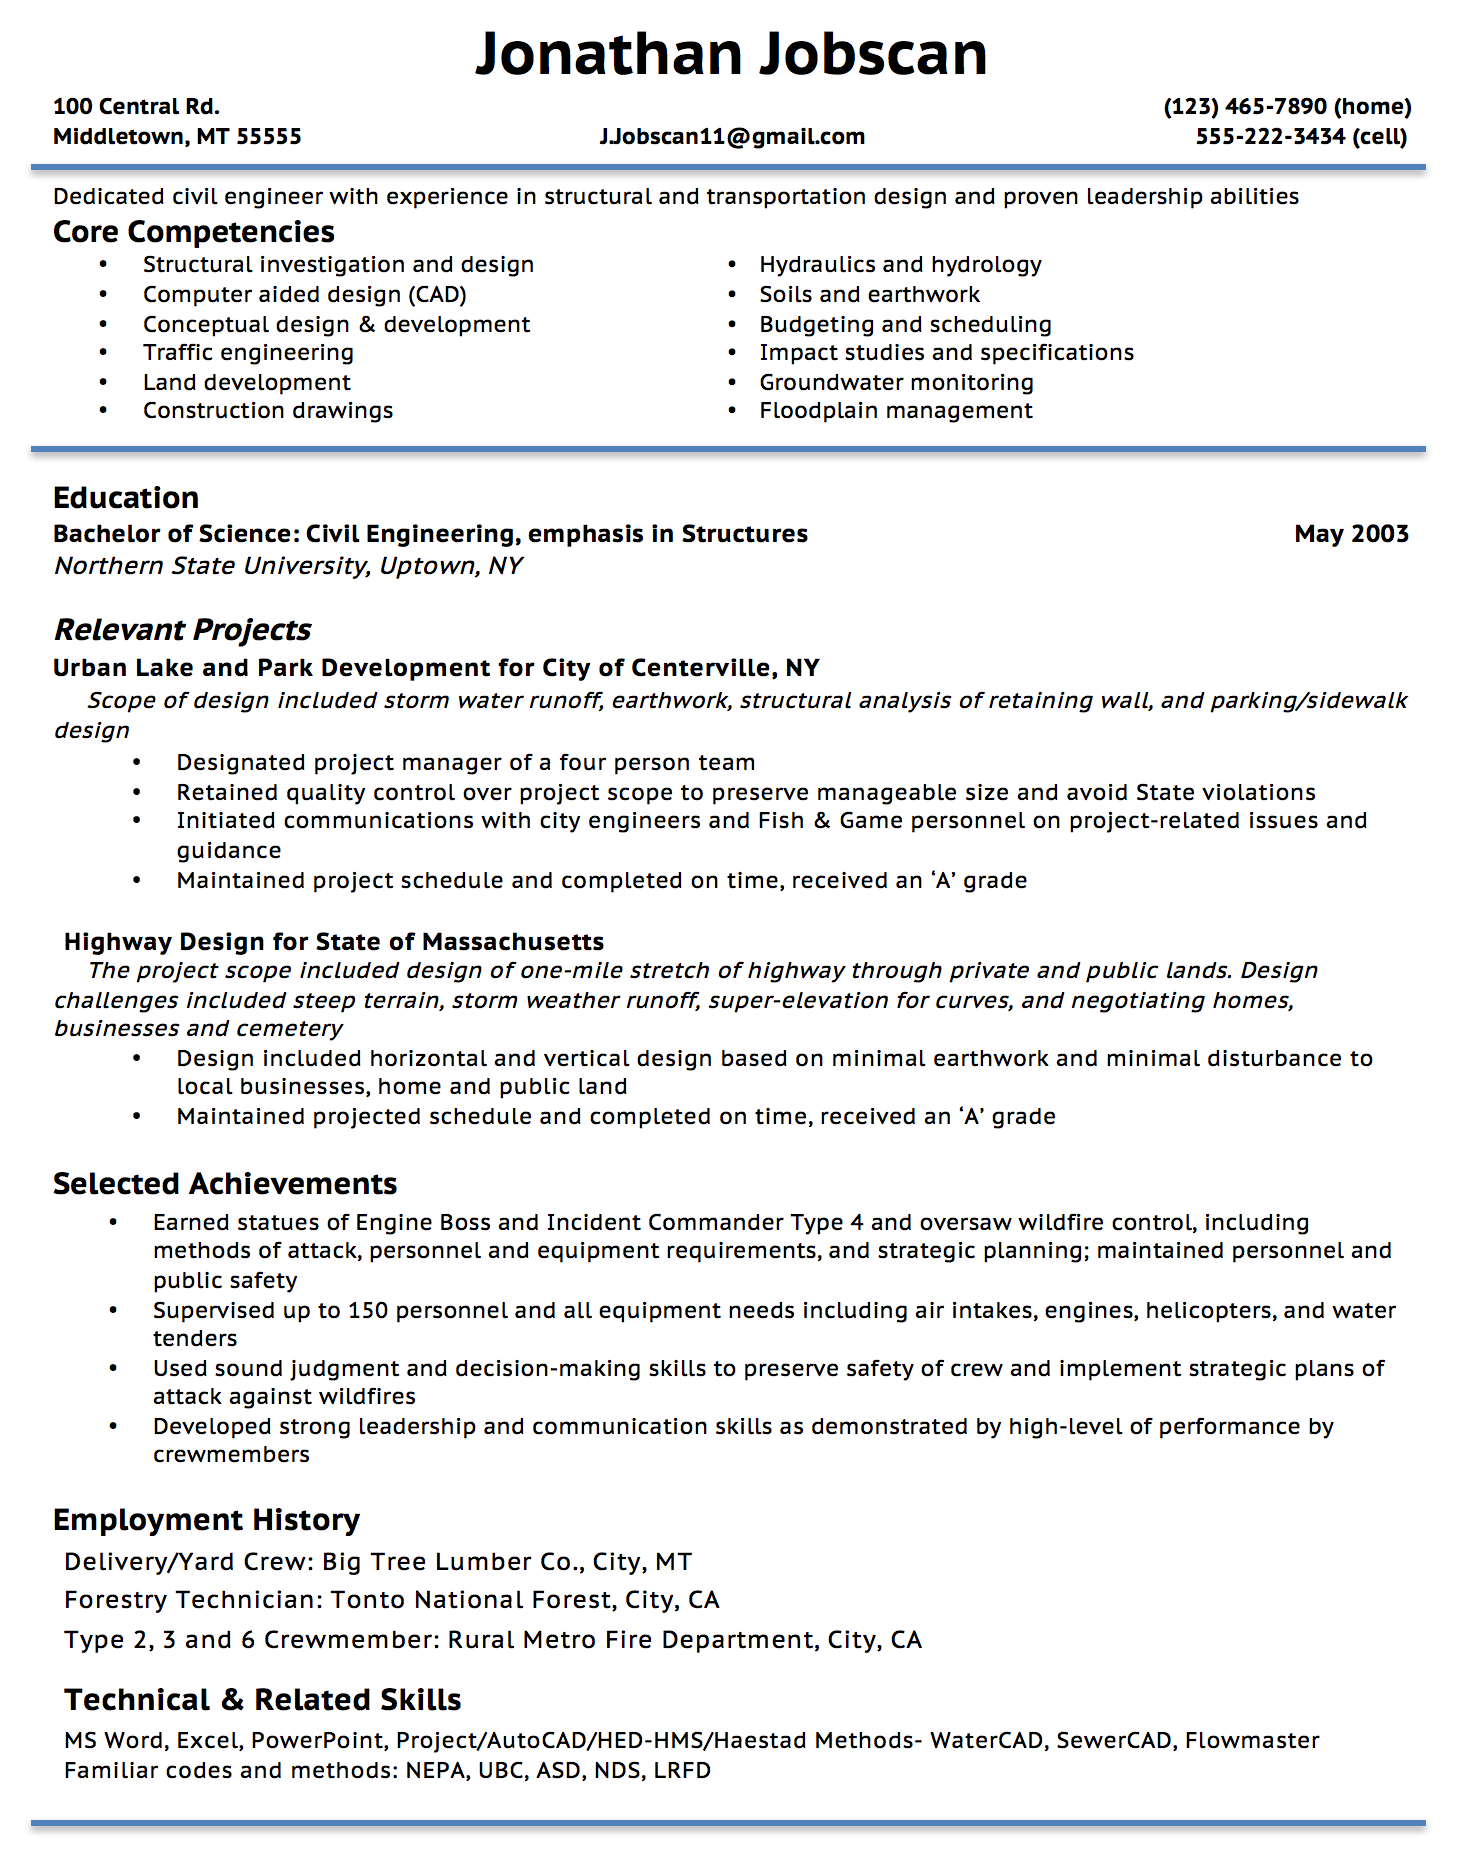 Opposenewapstandardsus  Seductive Resume Writing Guide  Jobscan With Marvelous Example Of A Functional Resume Format With Alluring Samples Of Good Resumes Also Science Resume Template In Addition How To Write A Resume Template And How To Have A Good Resume As Well As How To Do My Resume Additionally How To Make An Amazing Resume From Jobscanco With Opposenewapstandardsus  Marvelous Resume Writing Guide  Jobscan With Alluring Example Of A Functional Resume Format And Seductive Samples Of Good Resumes Also Science Resume Template In Addition How To Write A Resume Template From Jobscanco